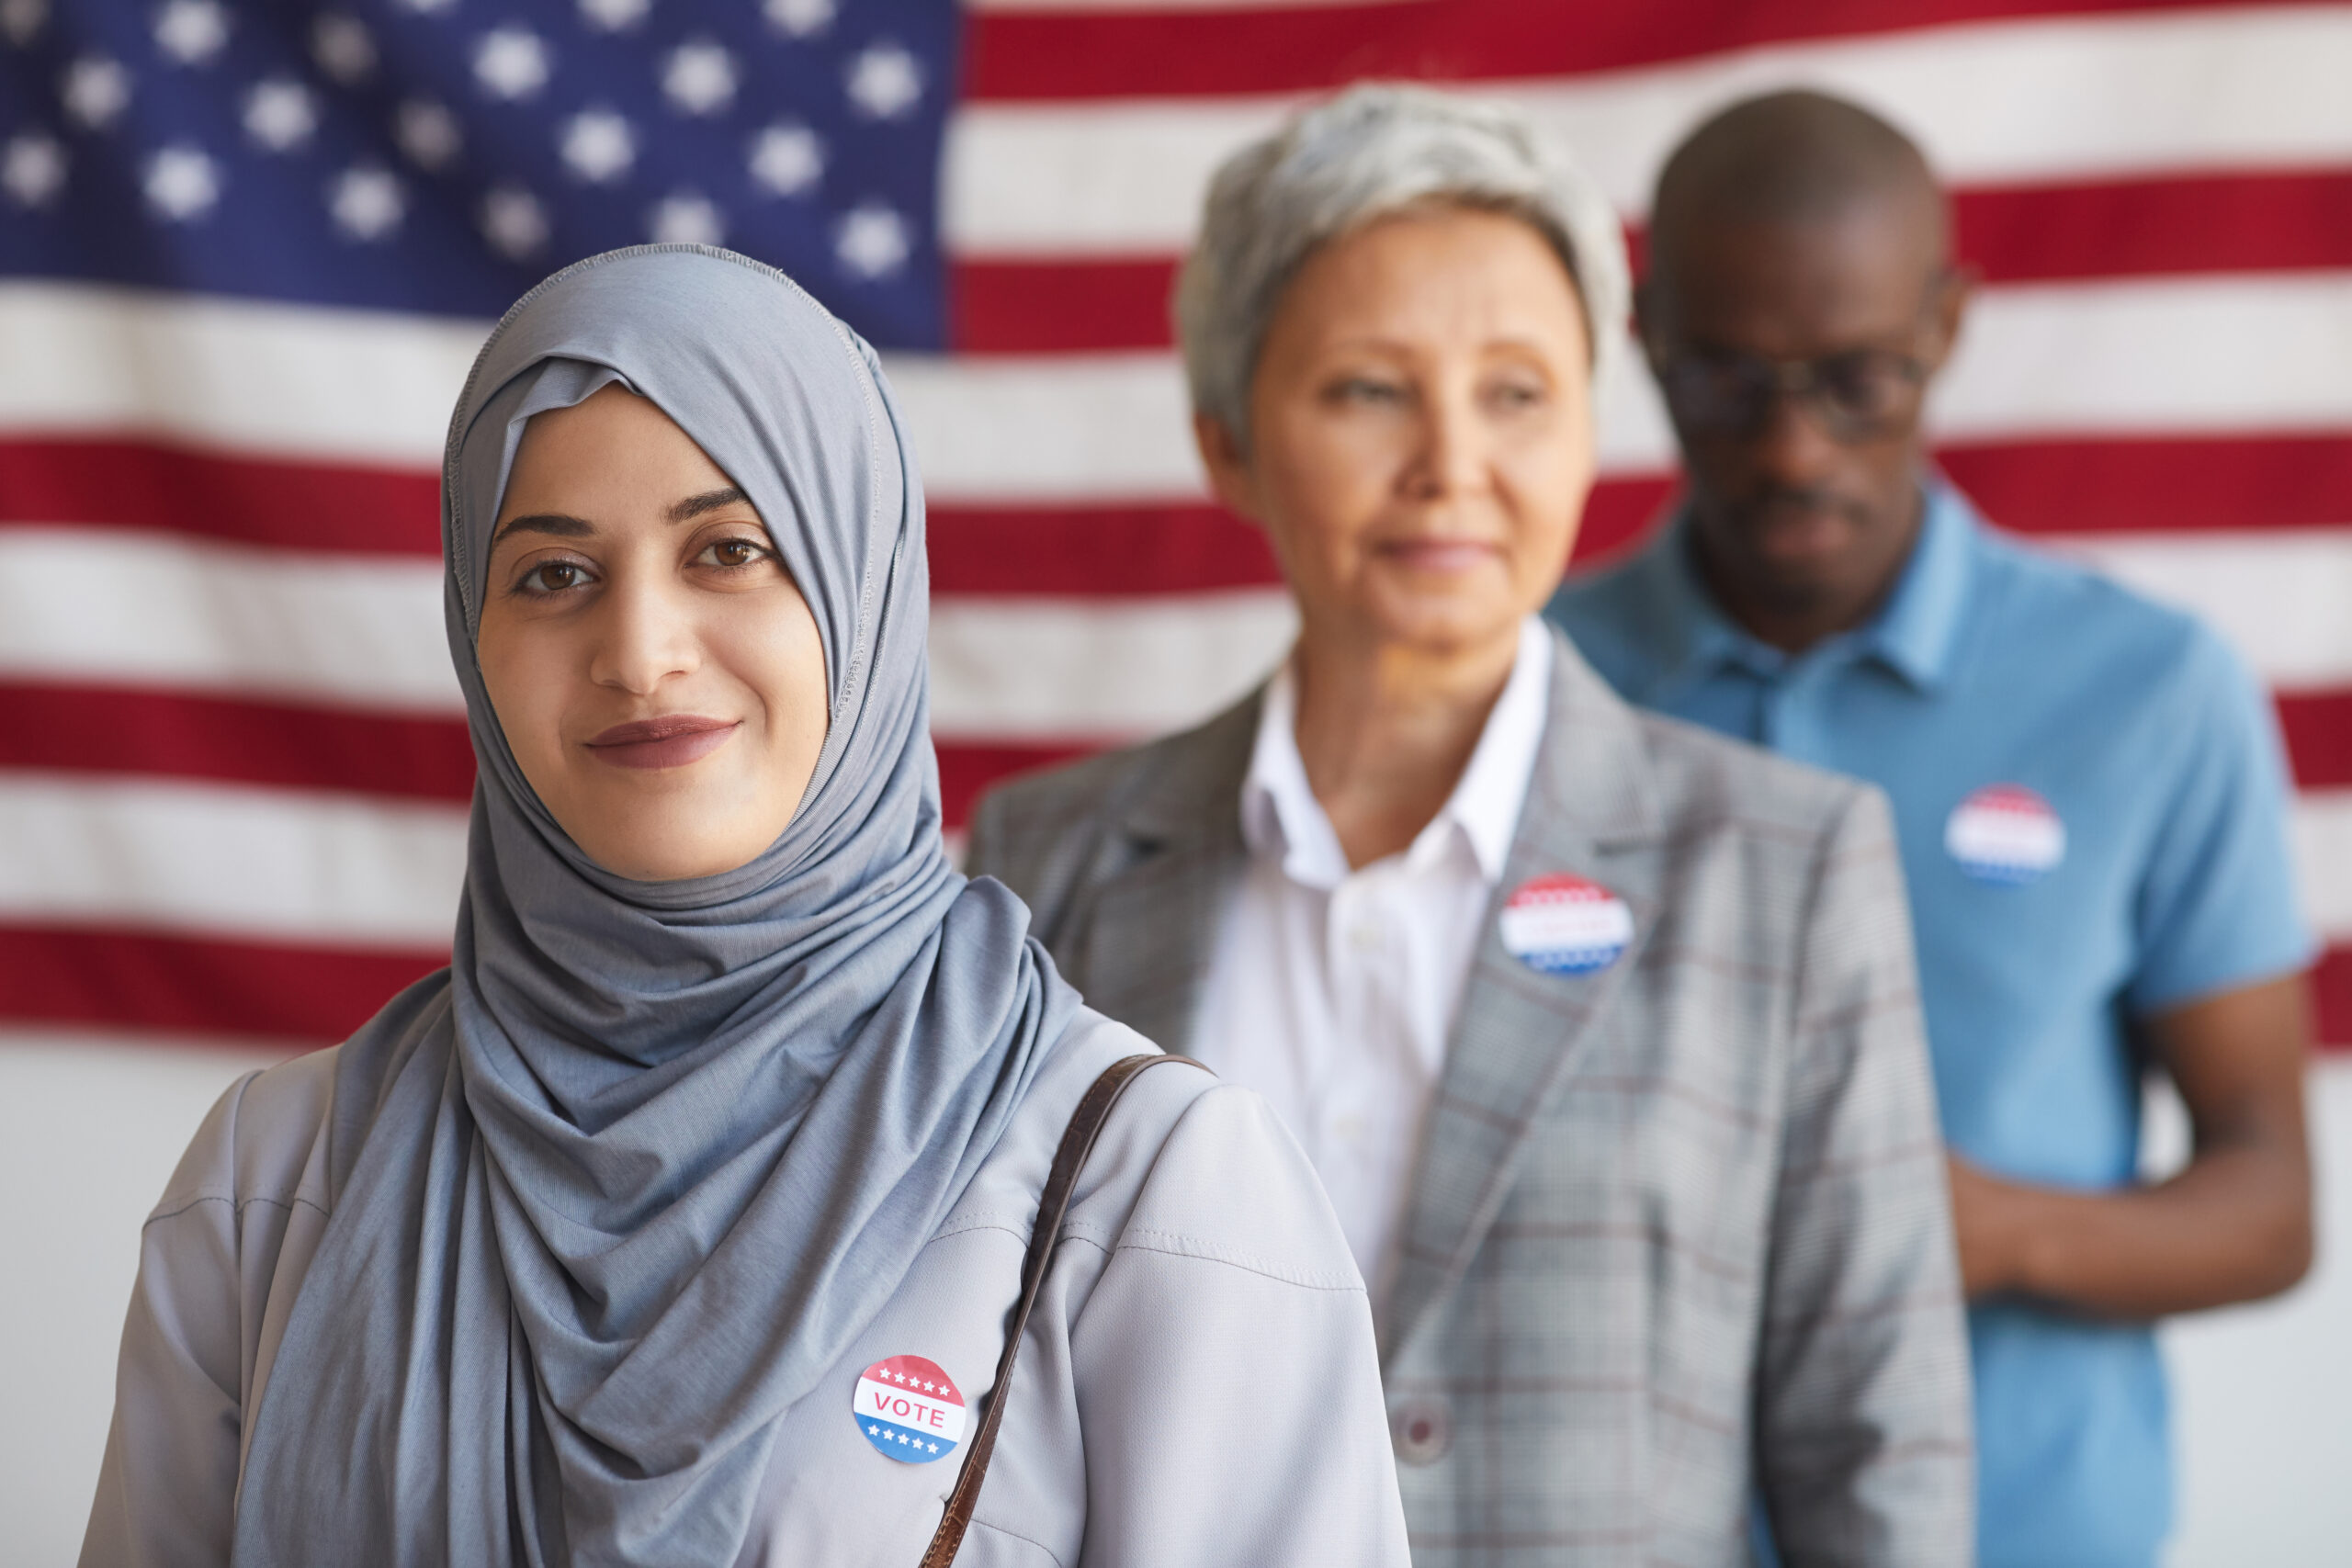 Immigrants voting in the 2020 election